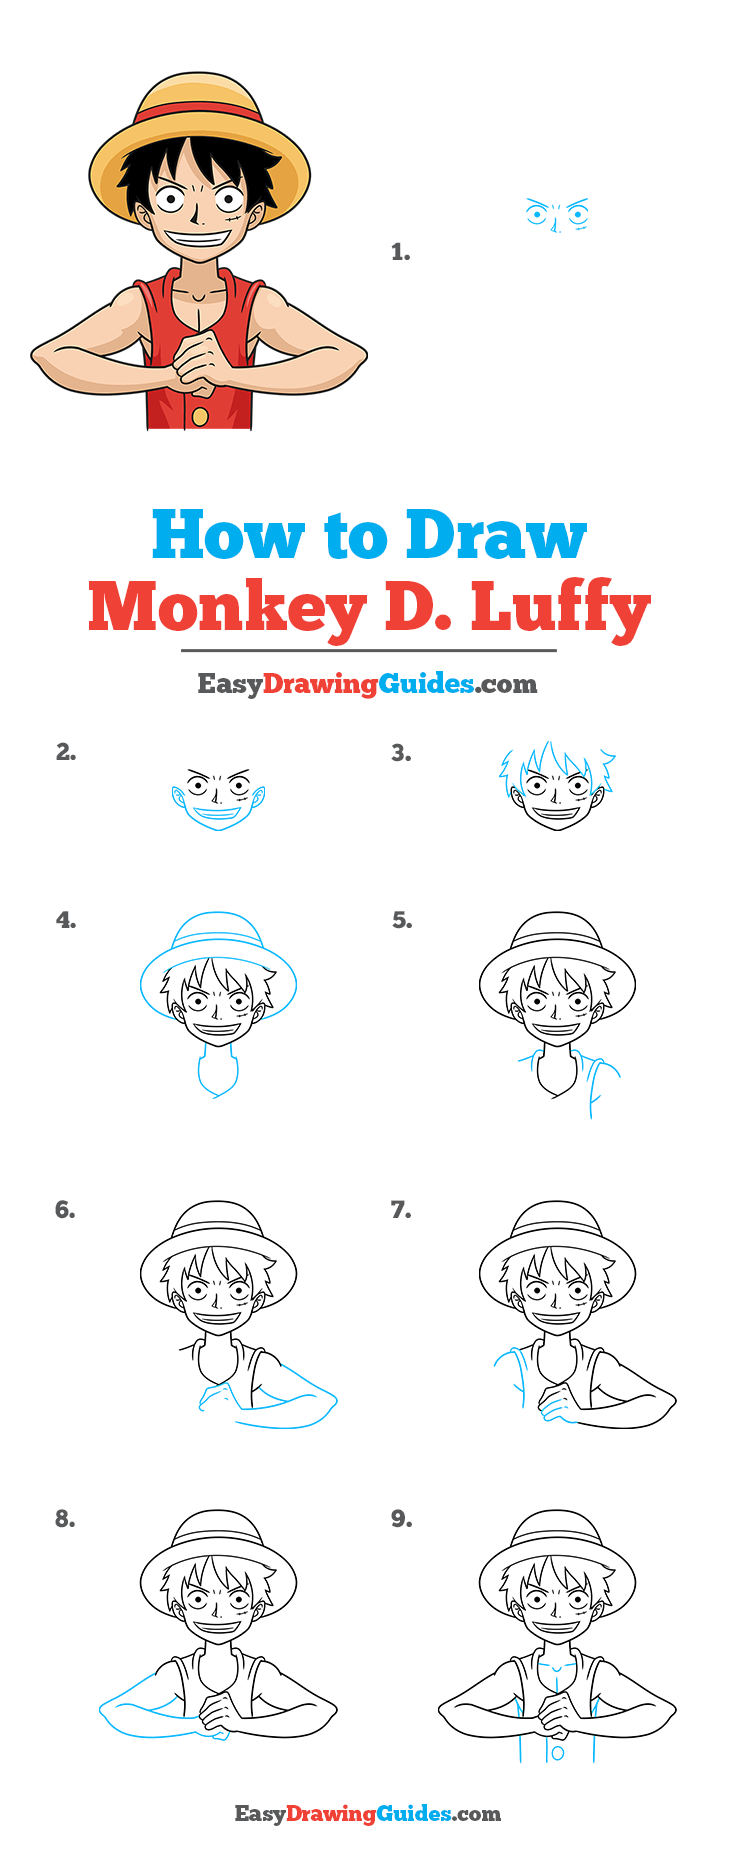 How to Draw Monkey D. Luffy from One Piece Step by Step Tutorial Image